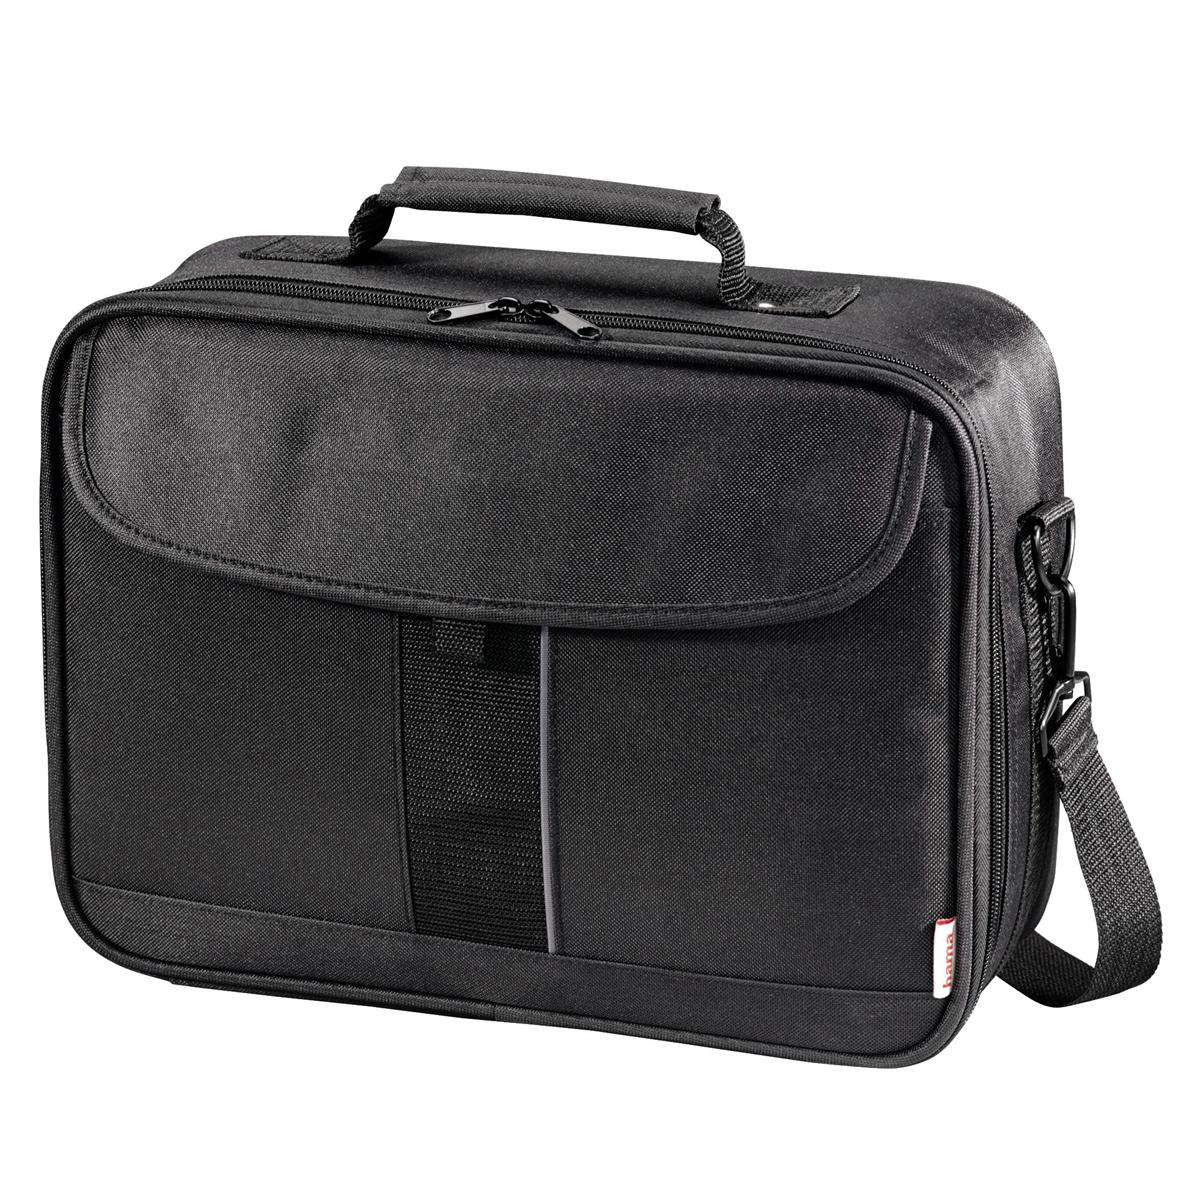 Equipment cases Hama Sportsline Padded Projector Bag Large W390xD270xH150mm Black Ref 101066